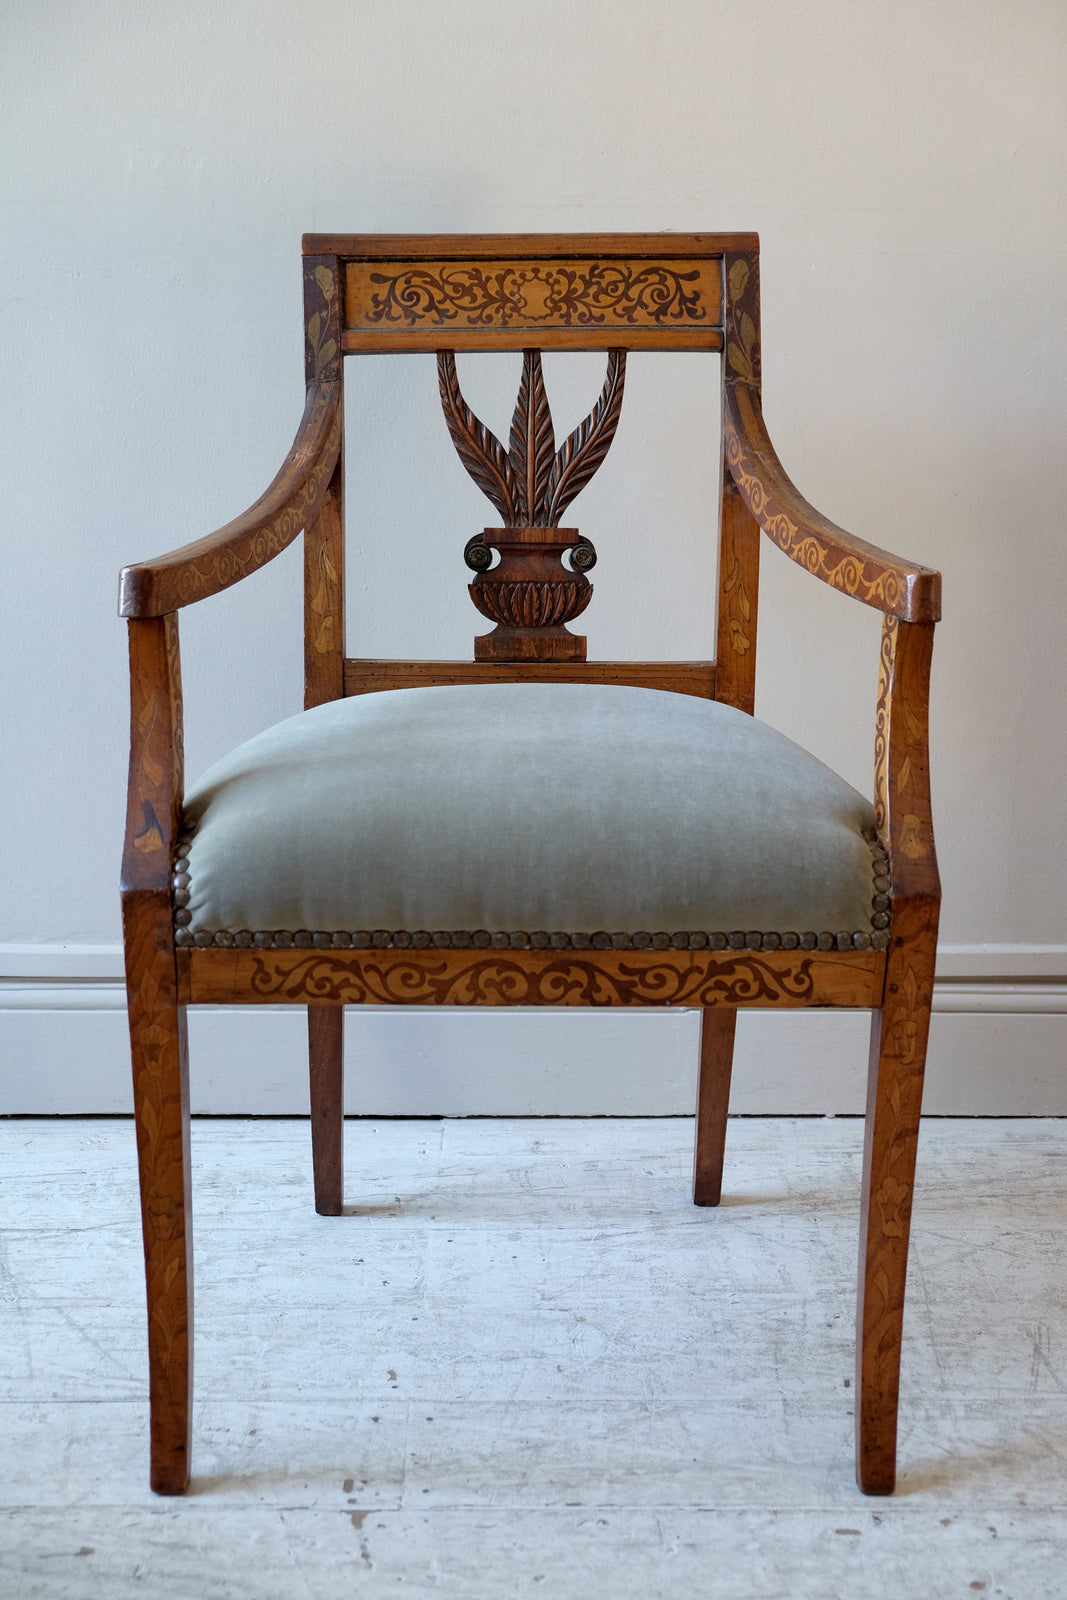 English 19th C. Desk Chair with Marquetry